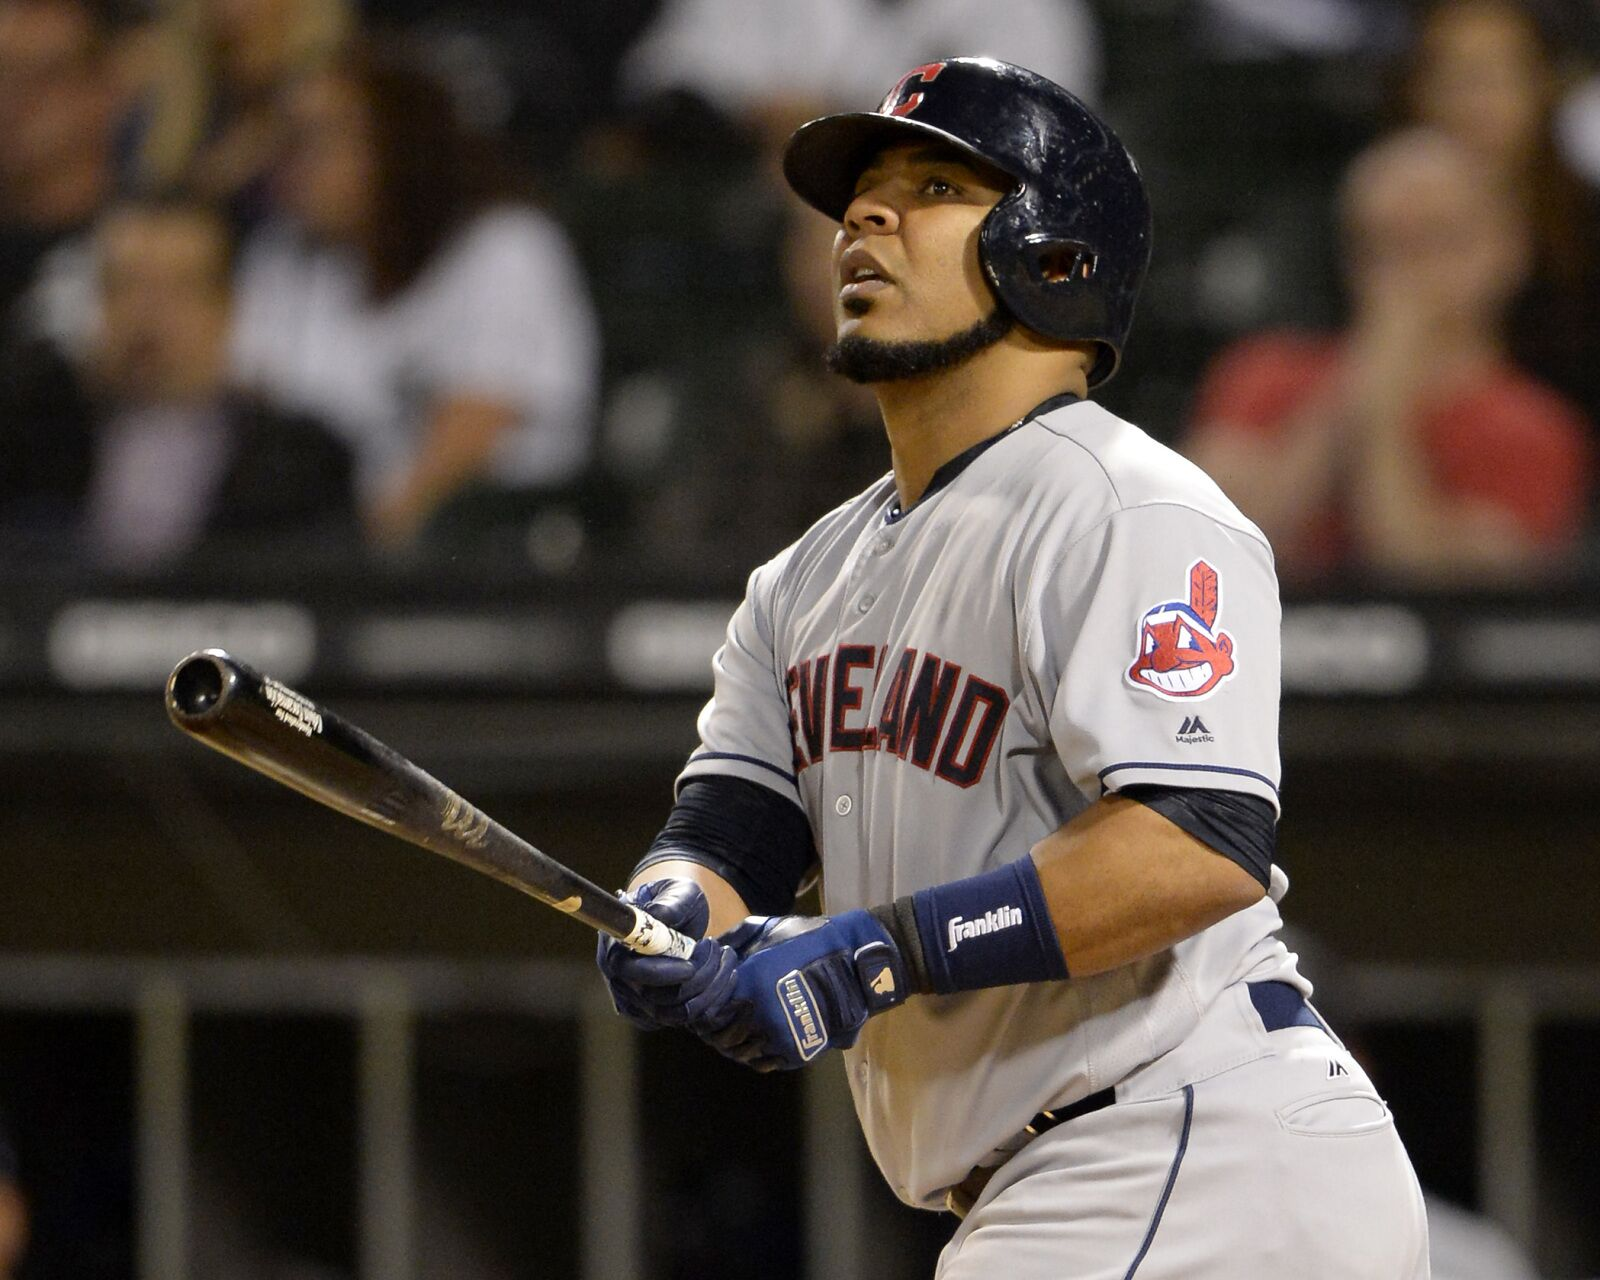 Seattle Mariners: Five trade fits for Edwin Encarnacion